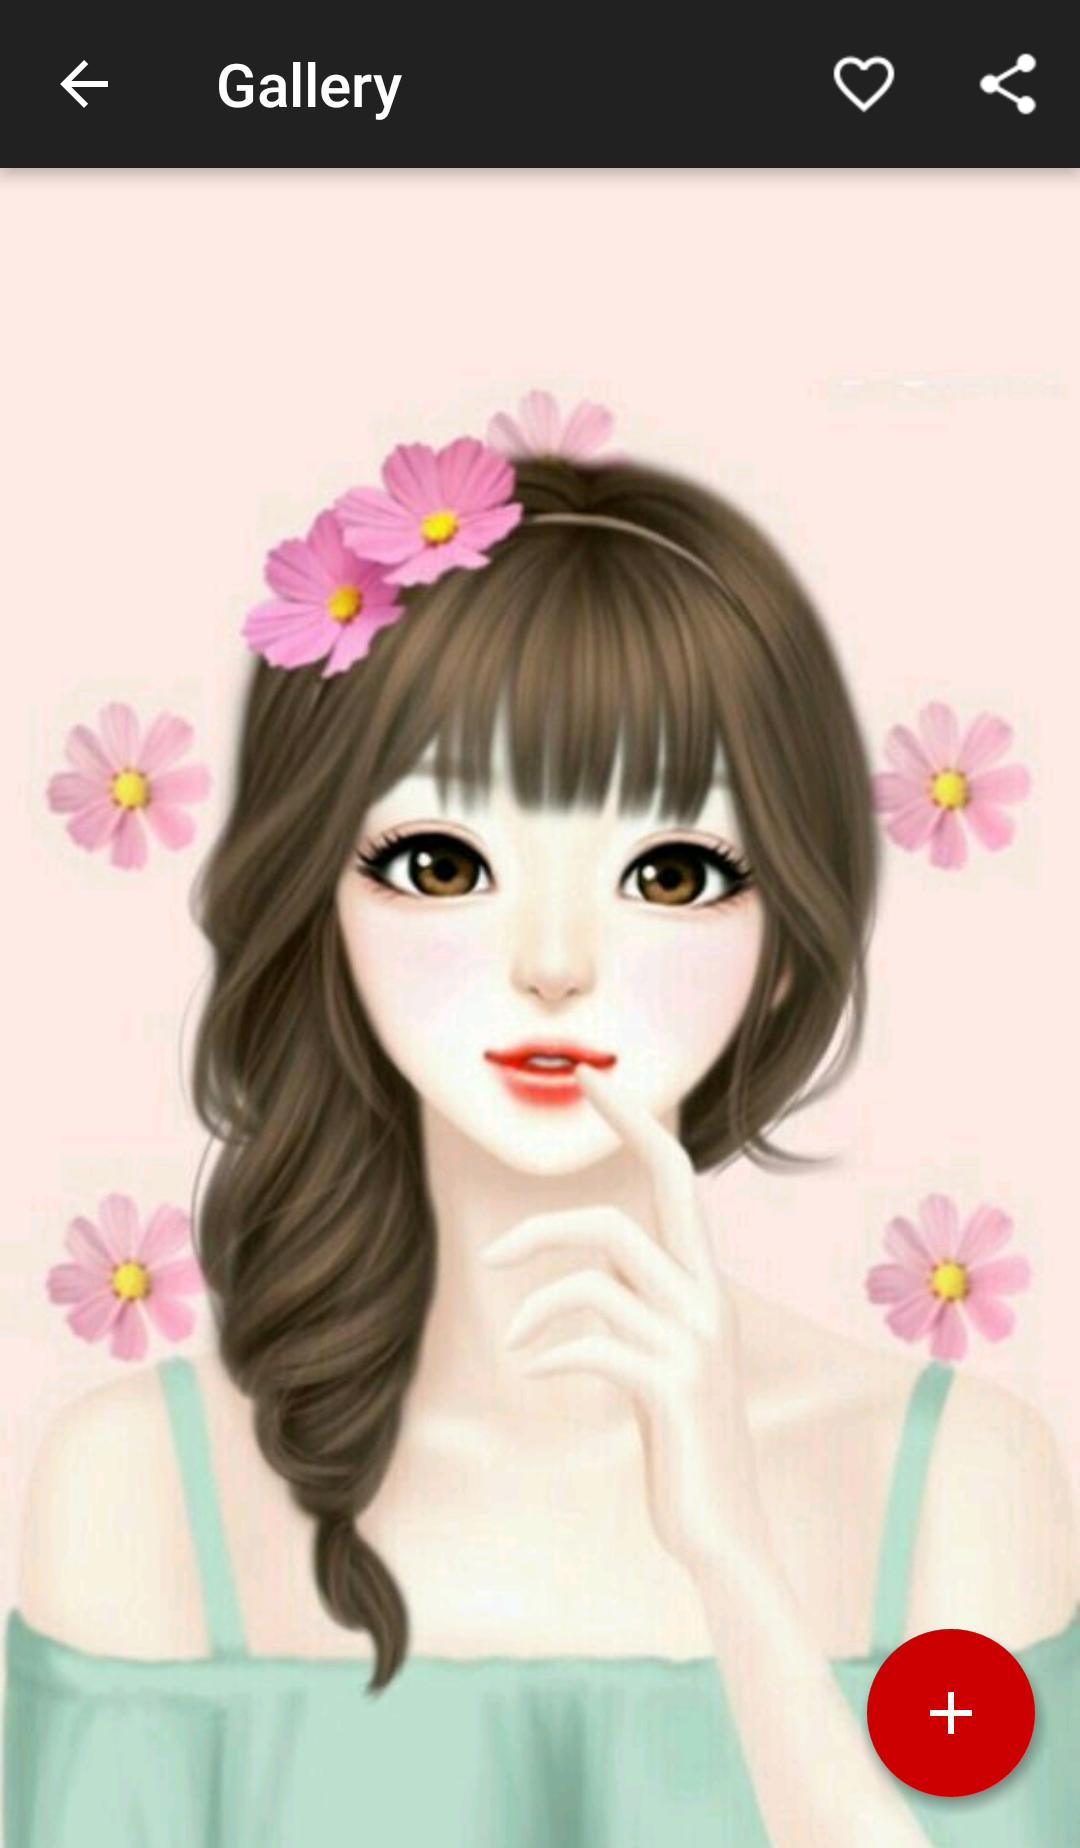 Cute Laurra Girl Wallpaper HD For Android APK Download